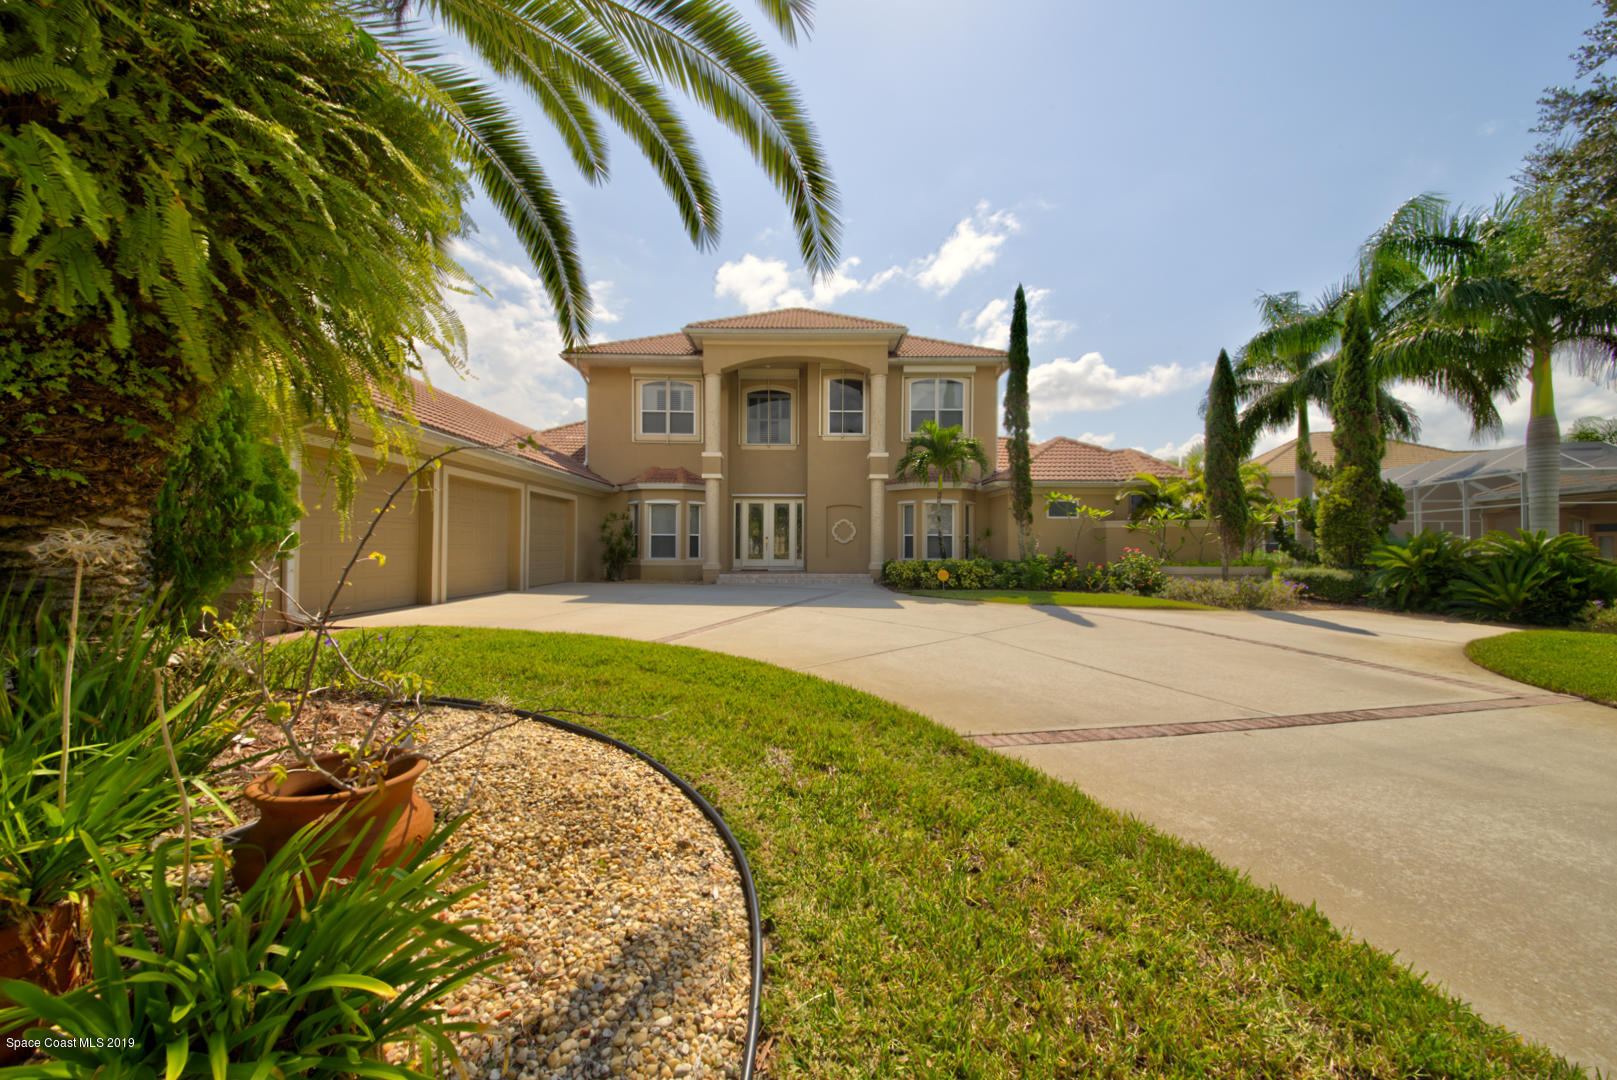 Single Family Homes for Sale at 8181 Compton Melbourne, Florida 32940 United States